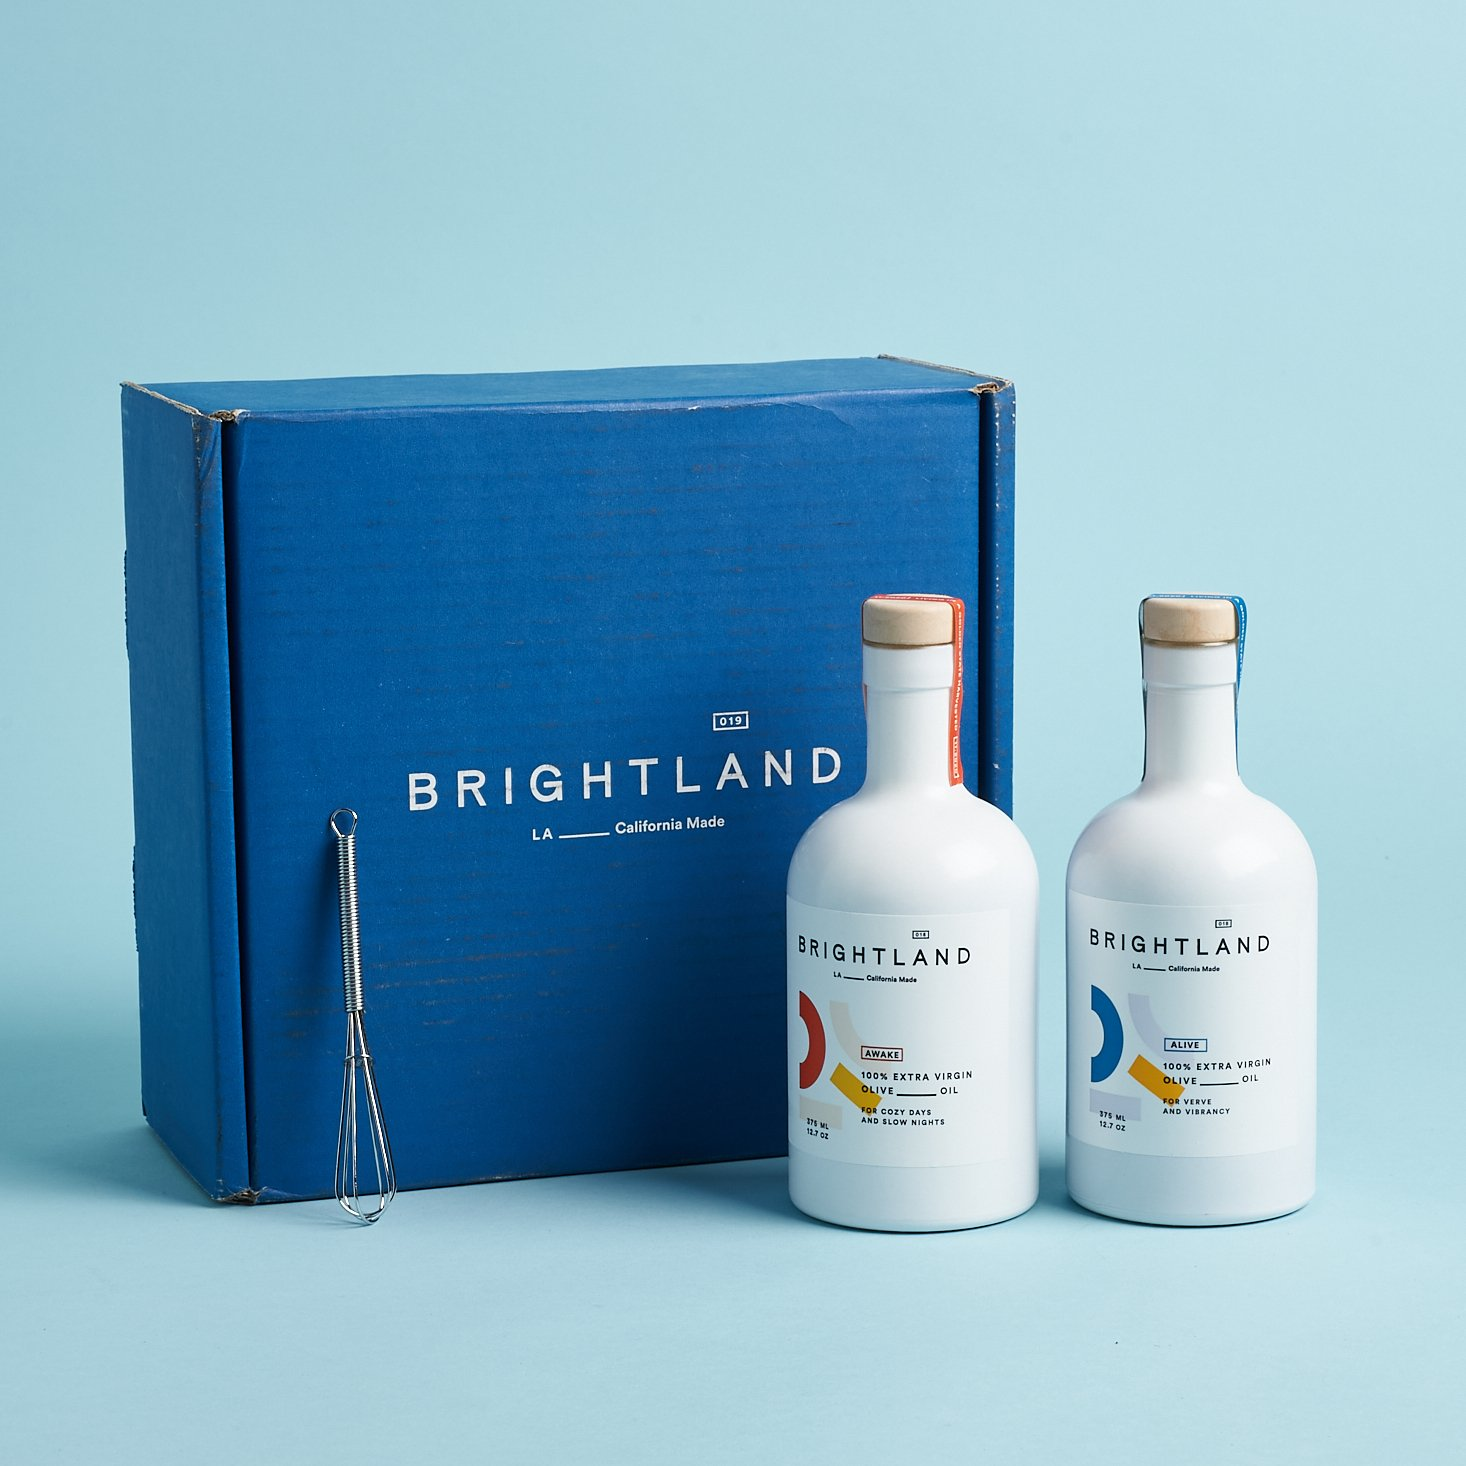 My Brightland Review—Are These Fancy Olive Oils Worth It?